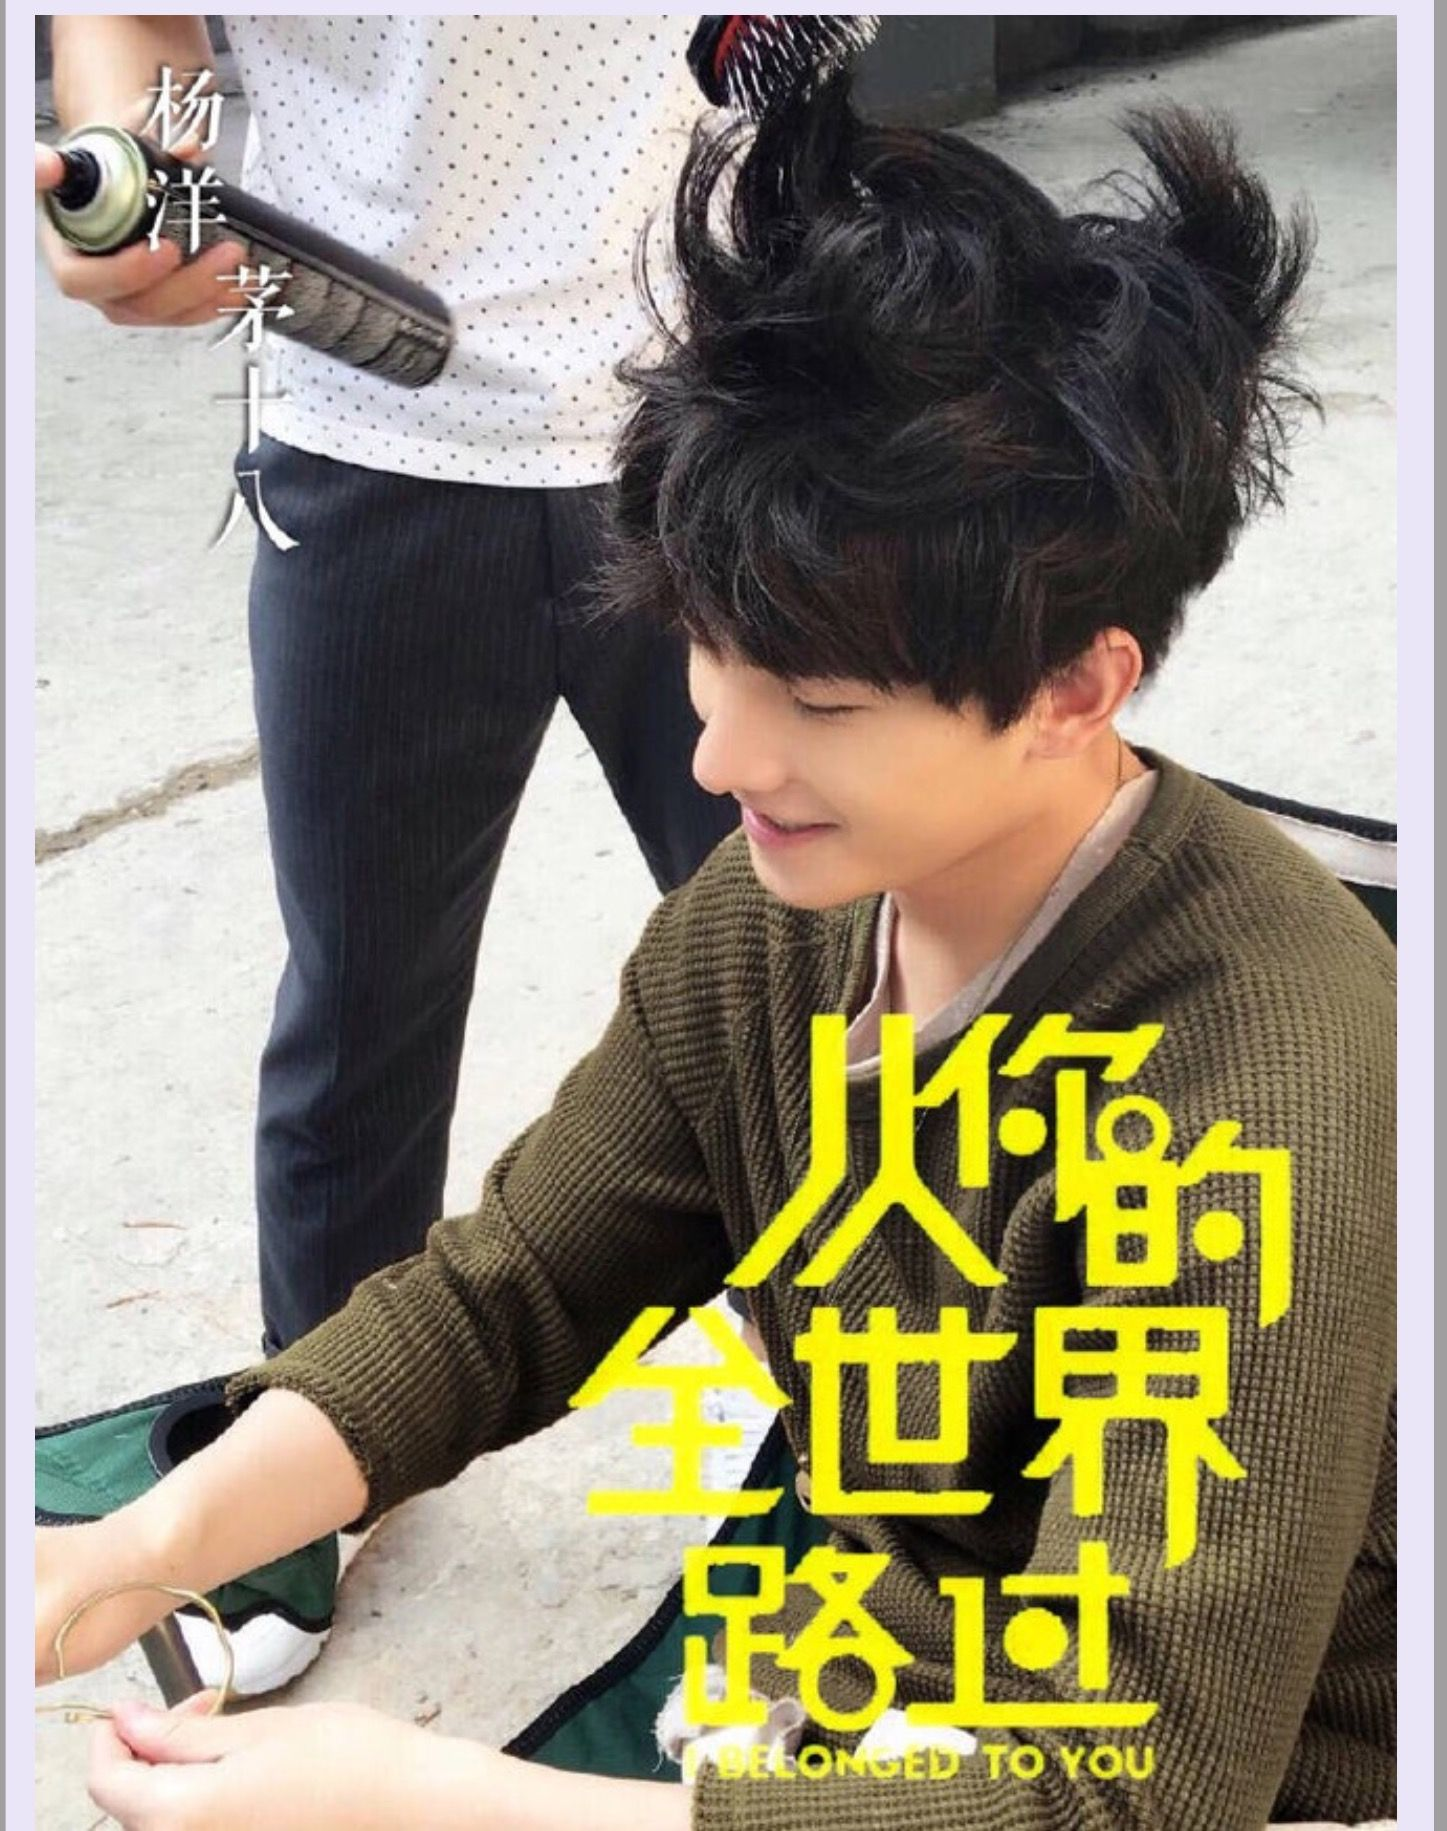 Chinese style haircut men virtual voyage blog posted new stills for yang yangs new movie i